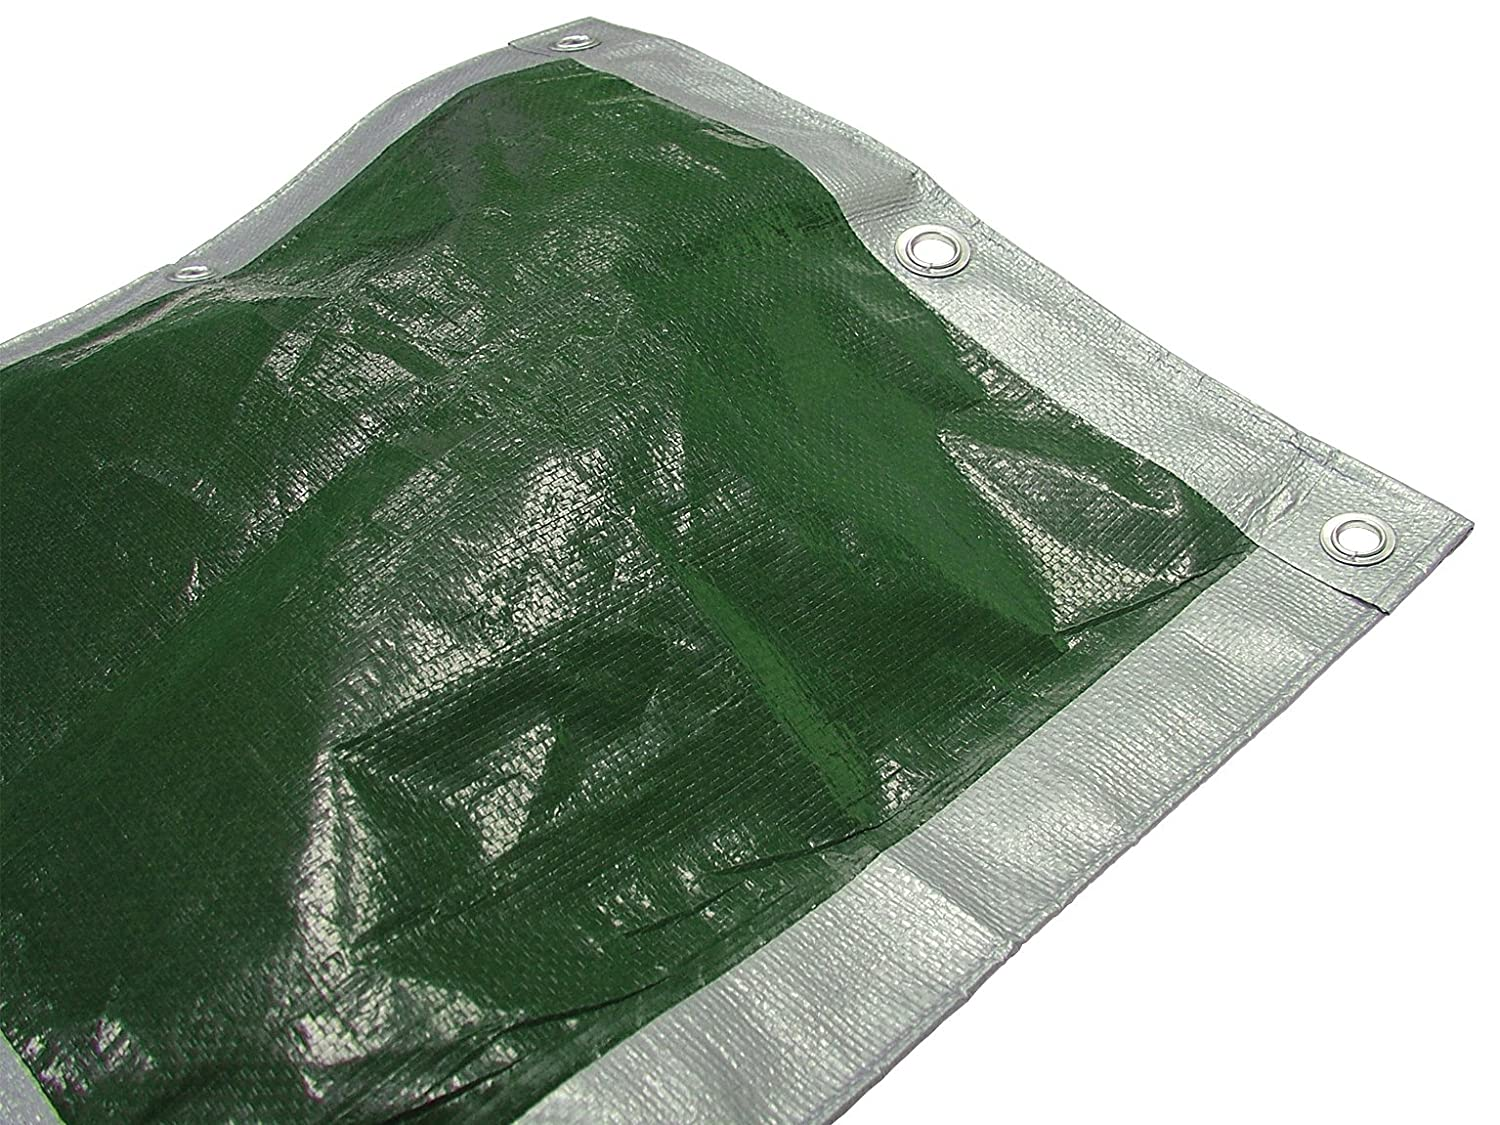 Faithfull 5.4 x 3.6m/ 18 x 12ft Tarpaulin - Green/Silver Toolbank 43404B